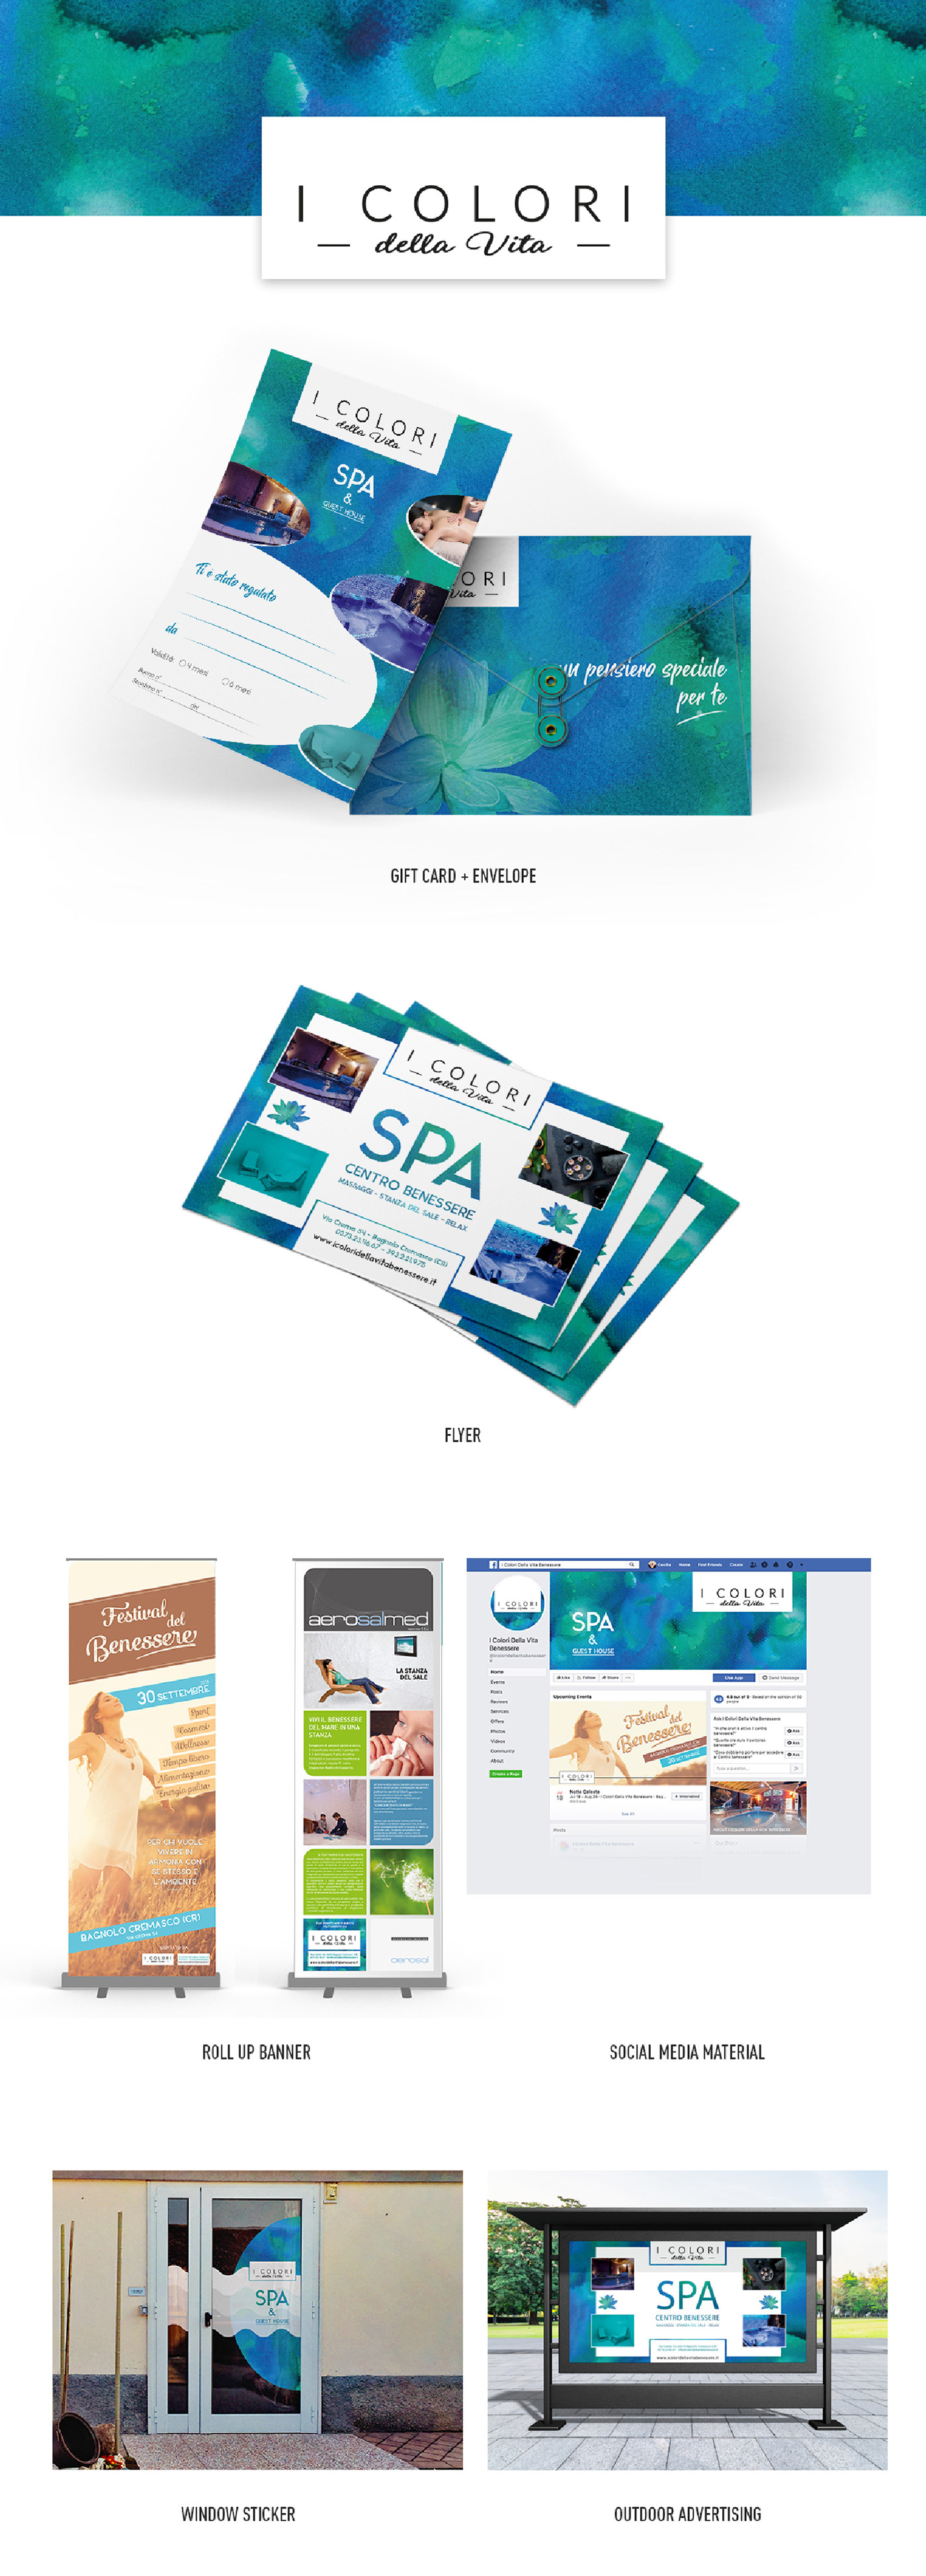 brand Exhibition  flyer Internal Signage logo material rollup Spa standup